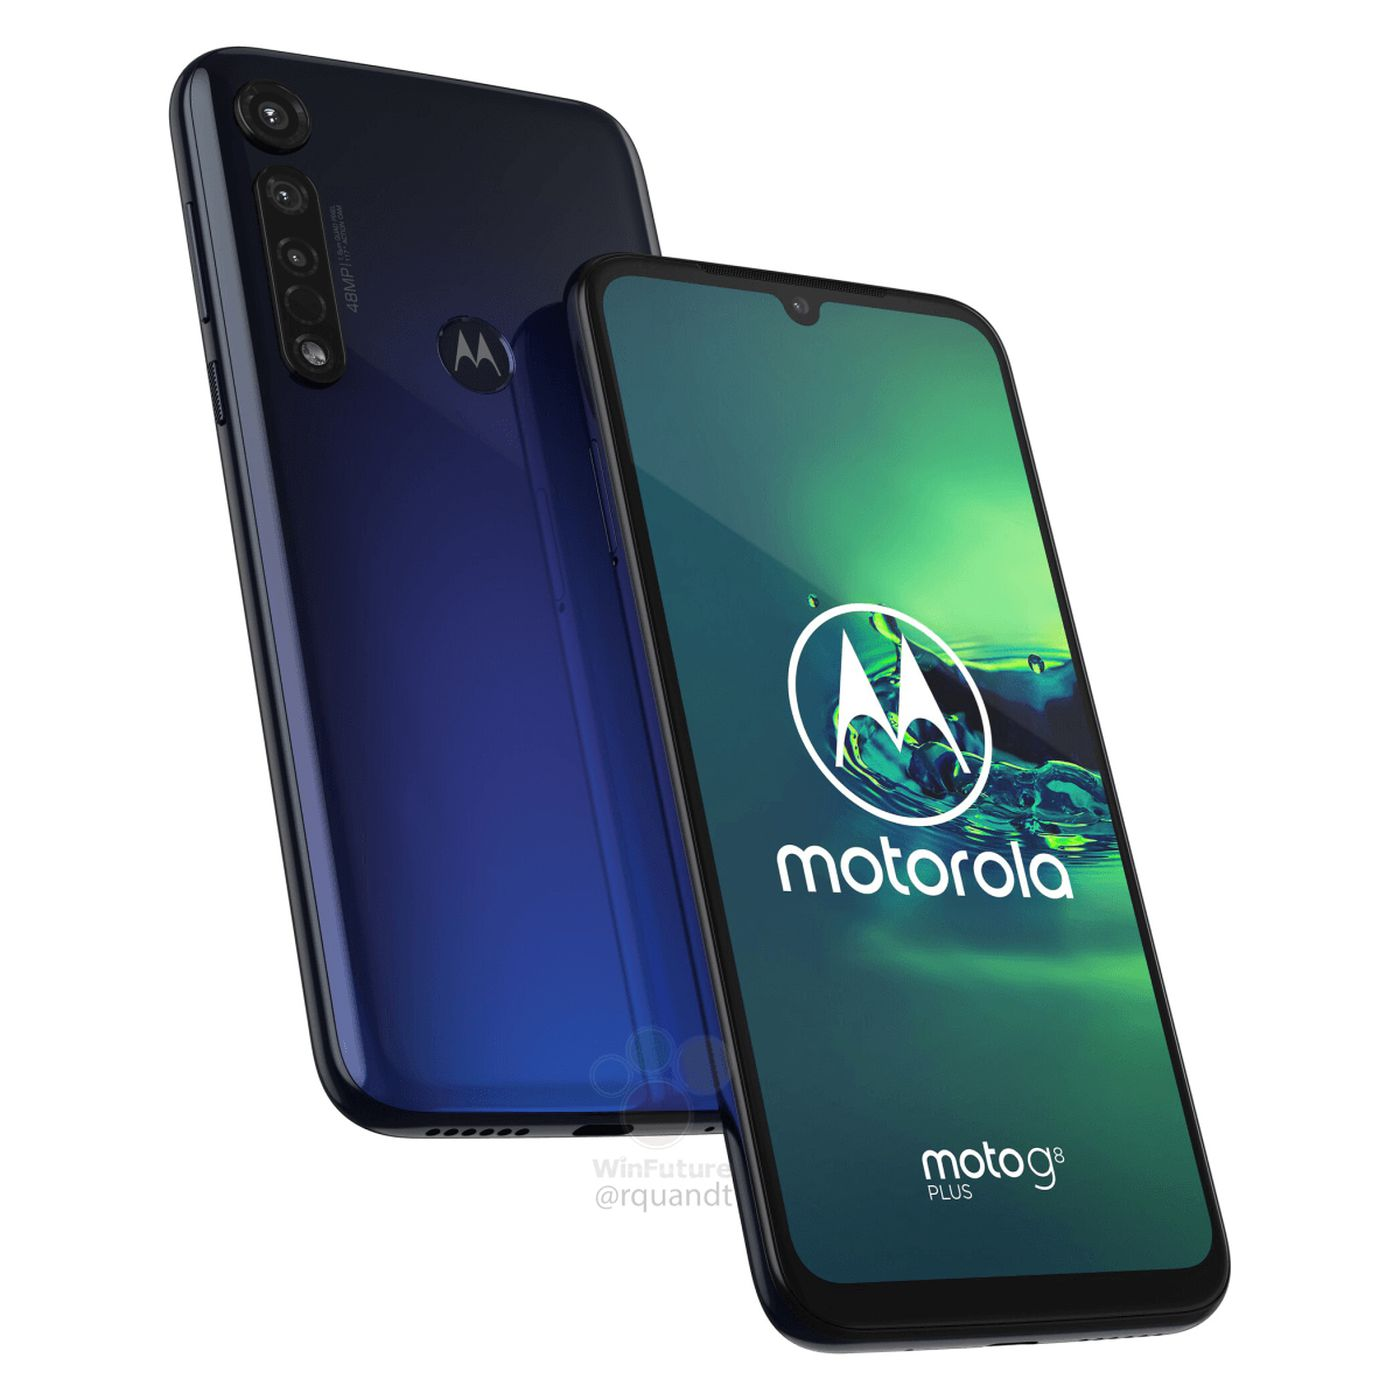 Motorola's Moto G8 Plus leaks with triple rear cameras and a 4,000